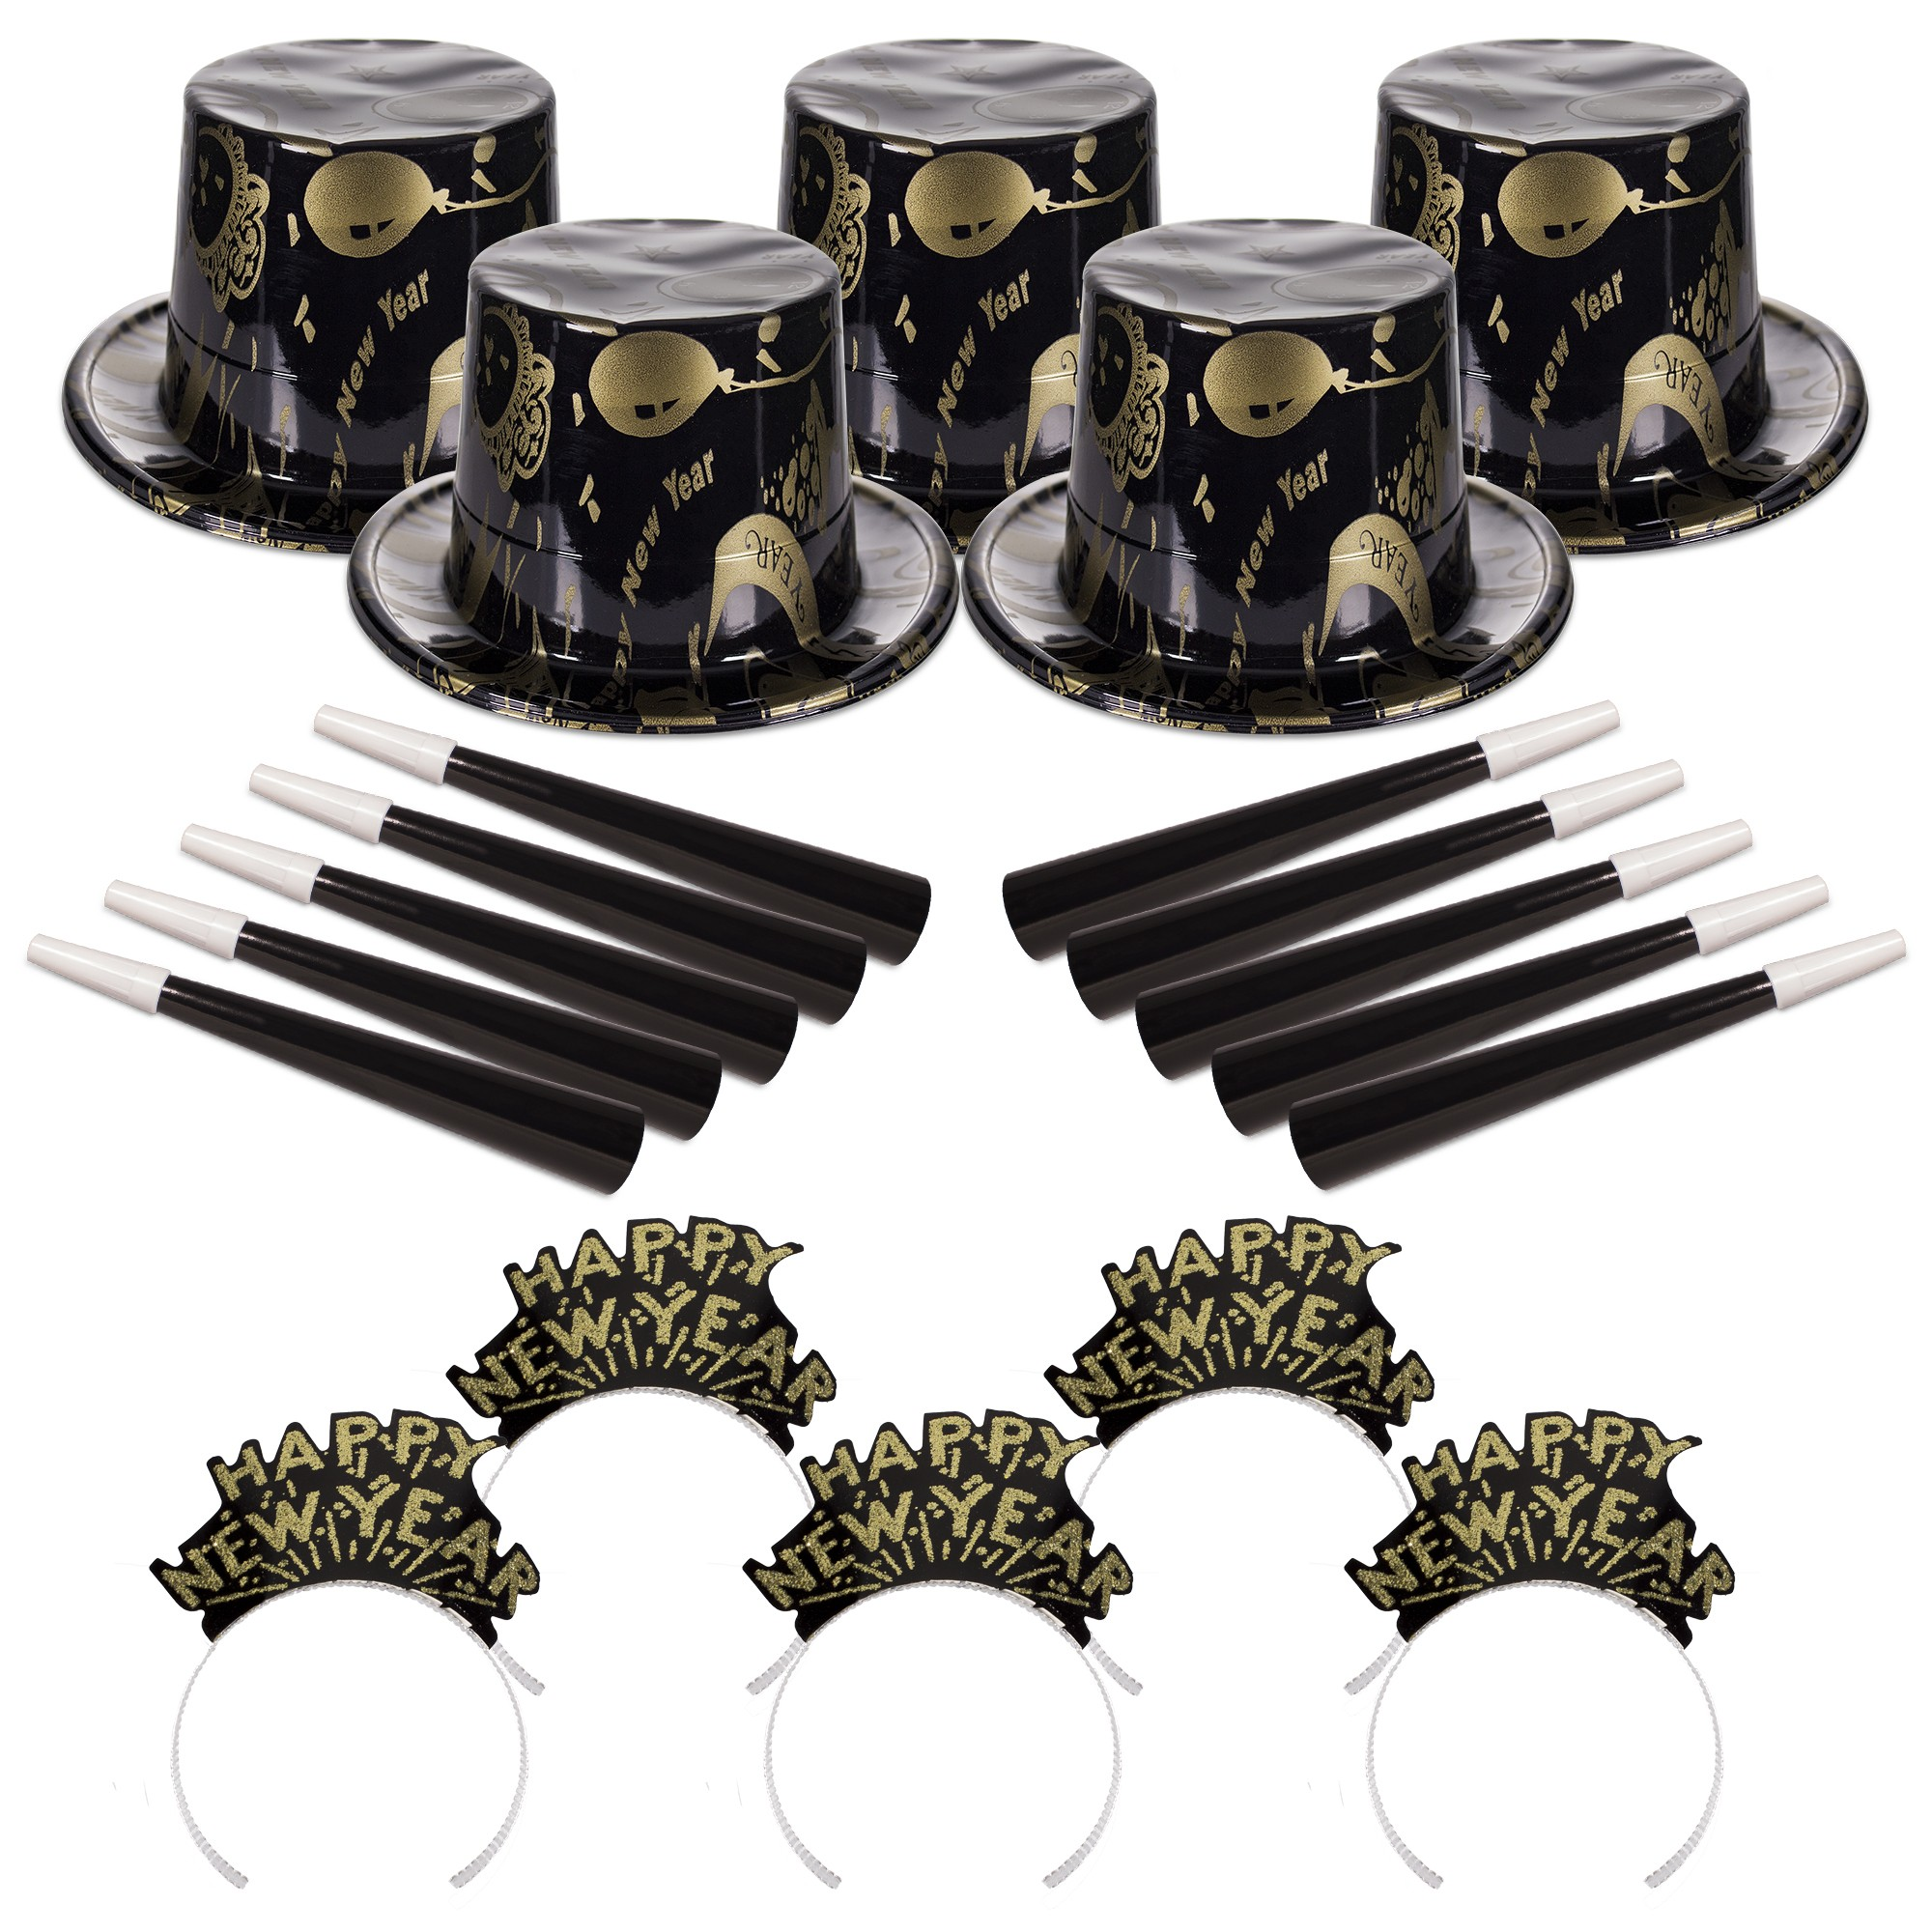 Ebony and Gold New Year's Eve Party Kit for 50 People